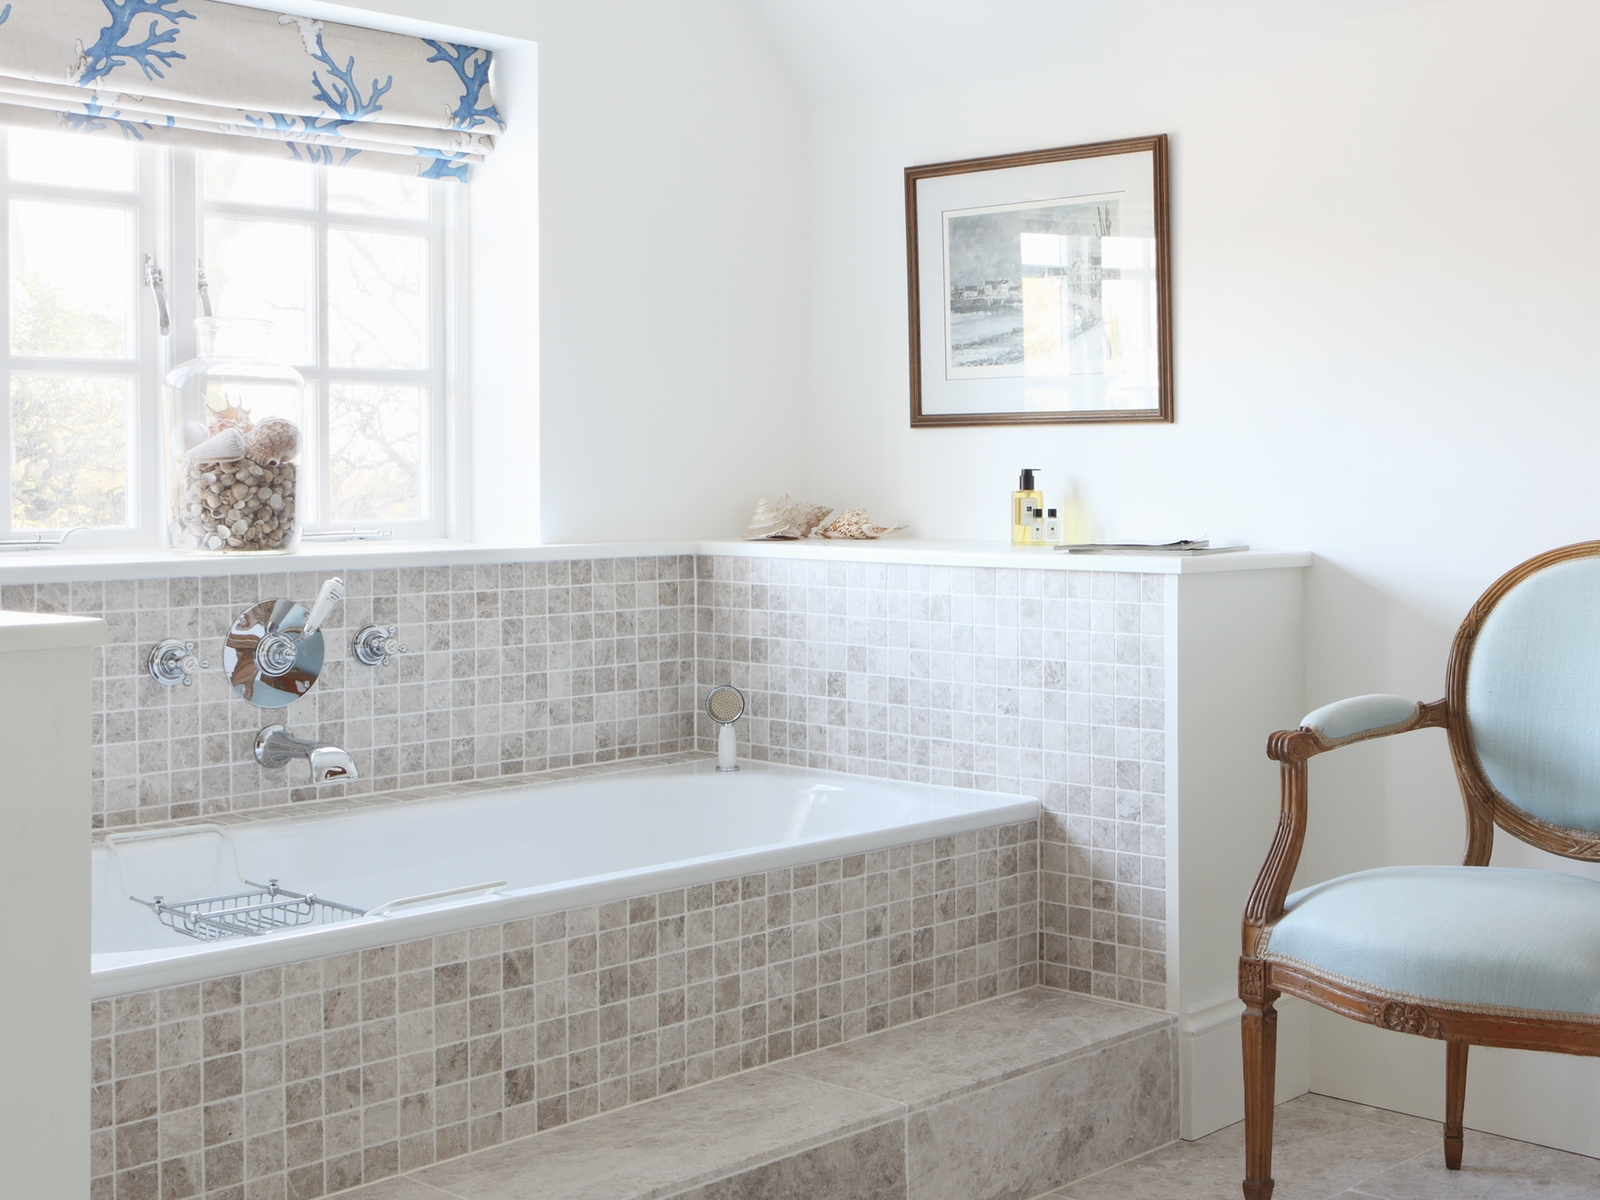 This is from our Turnkey project. We love the pale blue armchair and the seashells surrounding the bath.   Click here to see the entire project .